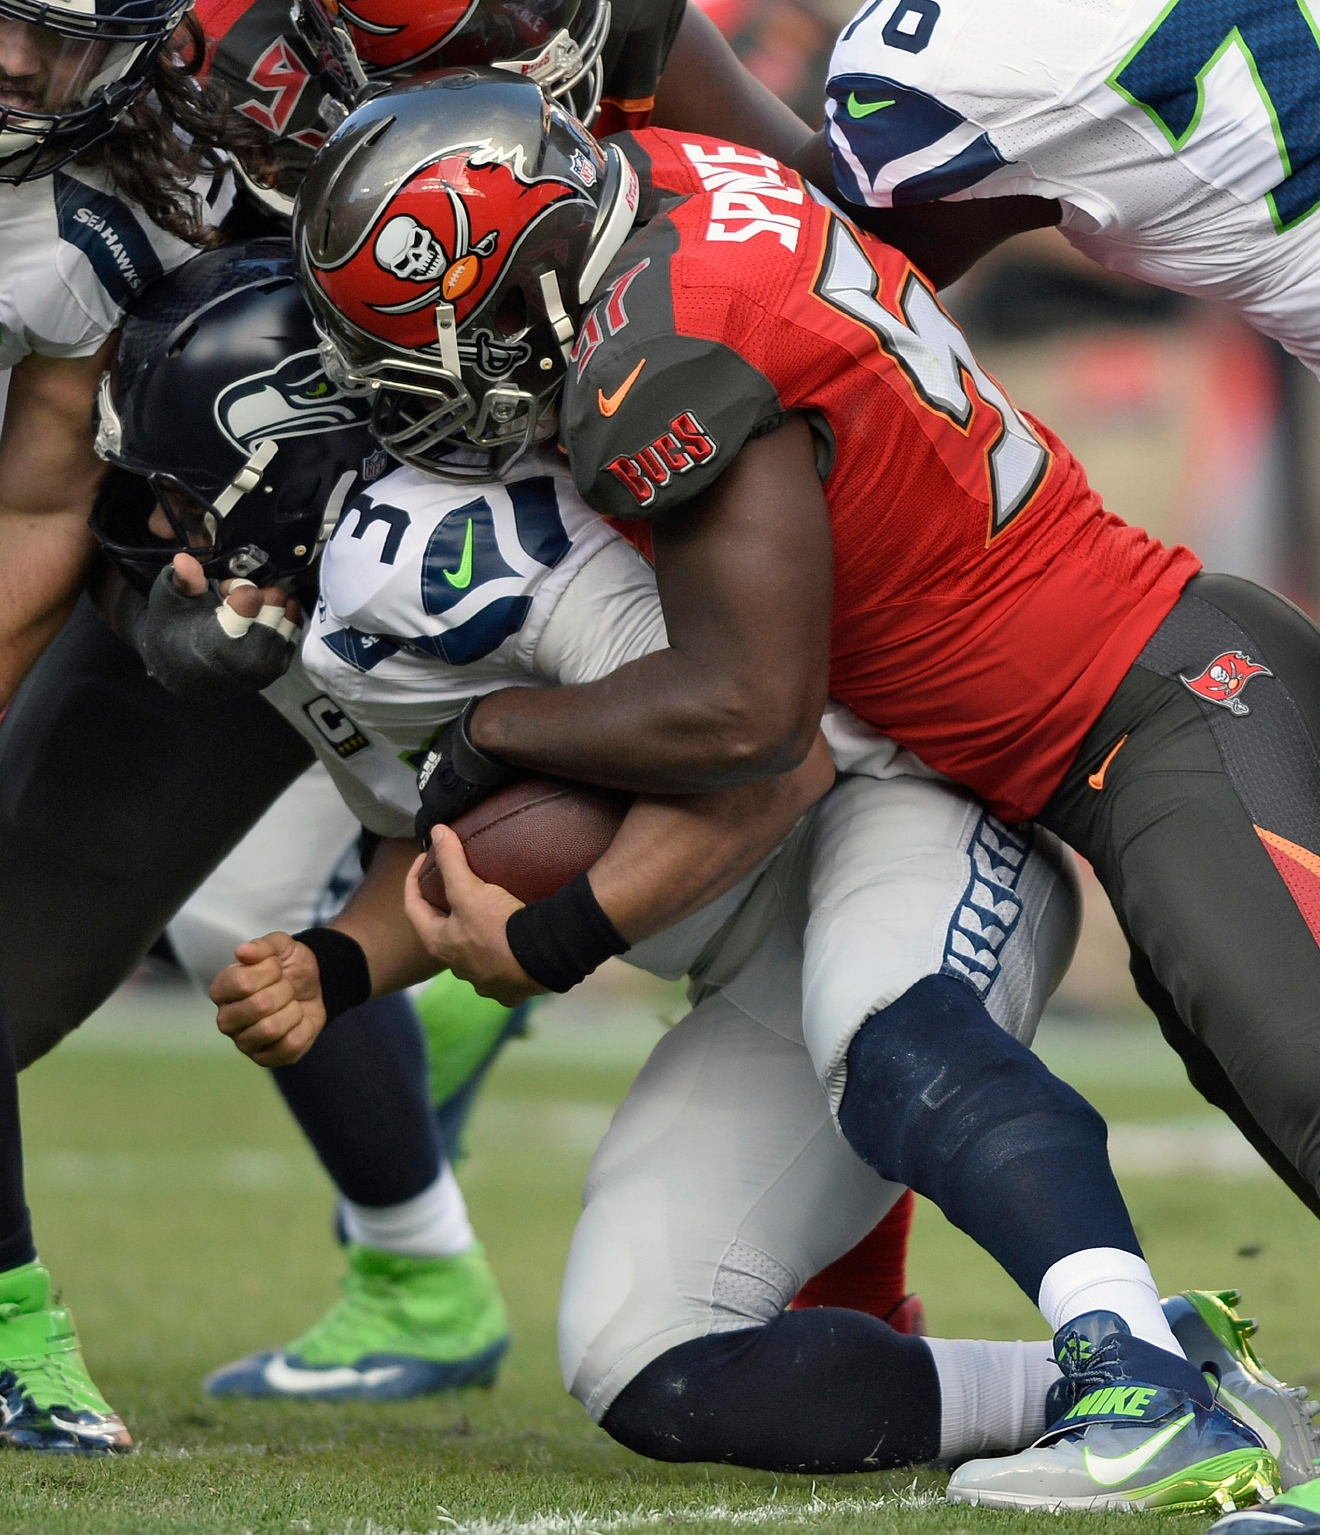 Tampa Bay Buccaneers defensive end Noah Spence (57) sacks Seattle Seahawks quarterback Russell Wilson (3) during the first quarter of an NFL football game Sunday, Nov. 27, 2016, in Tampa, Fla. (AP Photo/Jason Behnken)